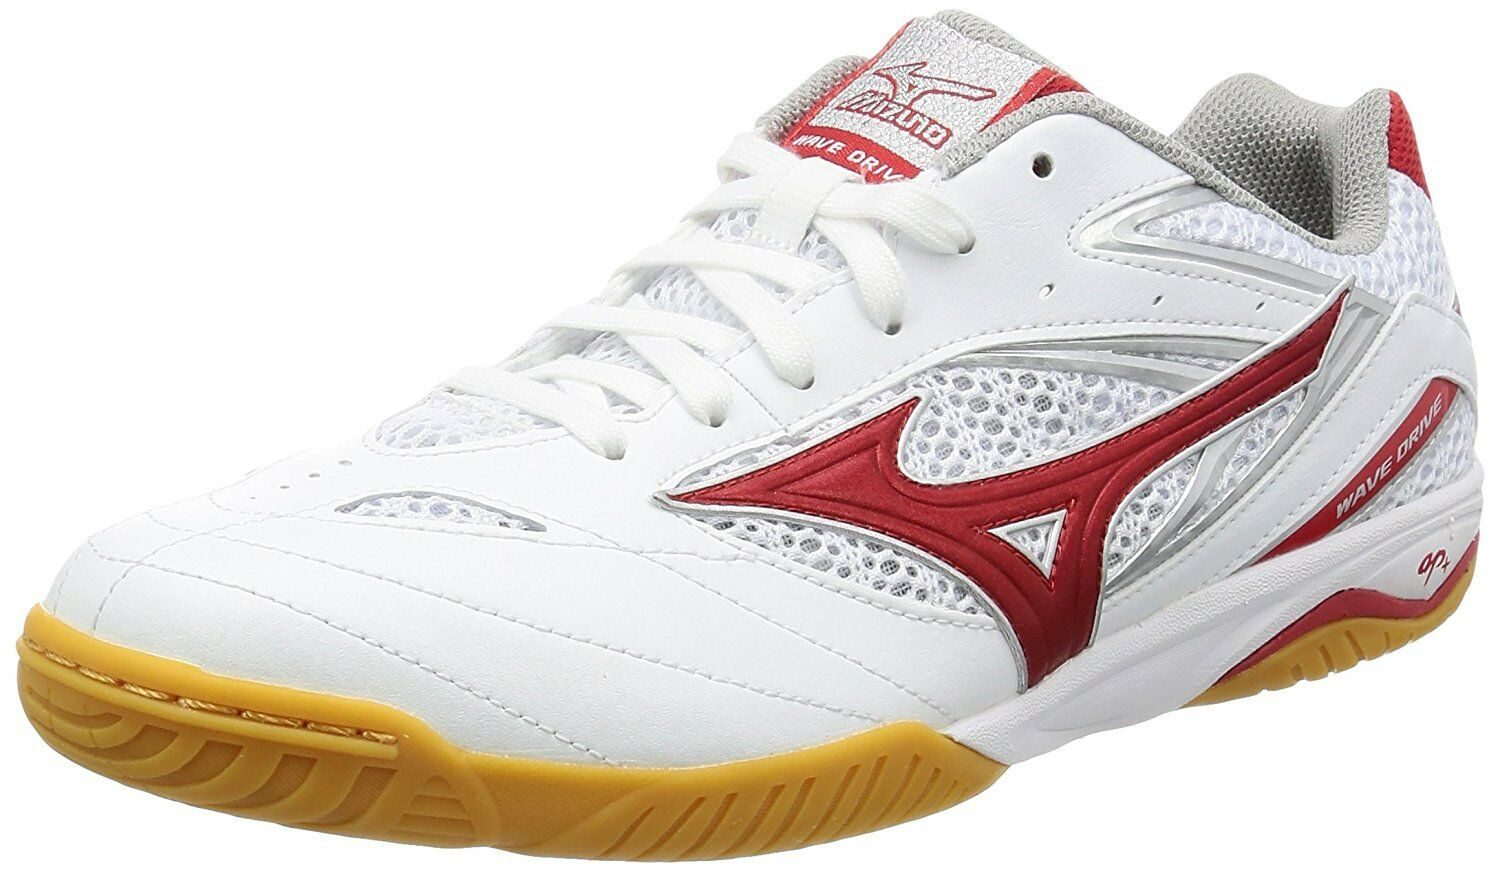 MIZUNO Table Tennis chaussures WAVE DRIVE 8 81GA1705 blanc rouge US8(26cm)